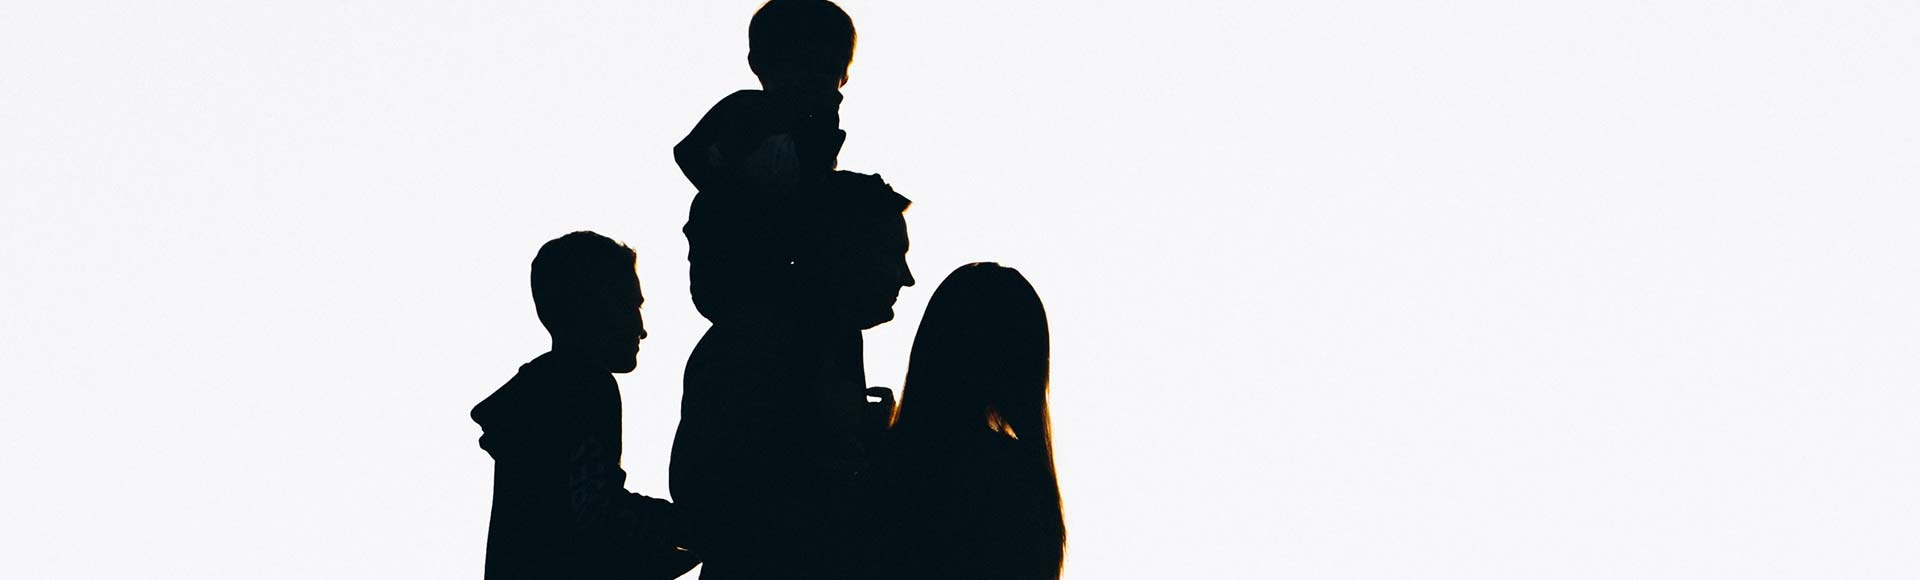 silhouette of a family in the sunset